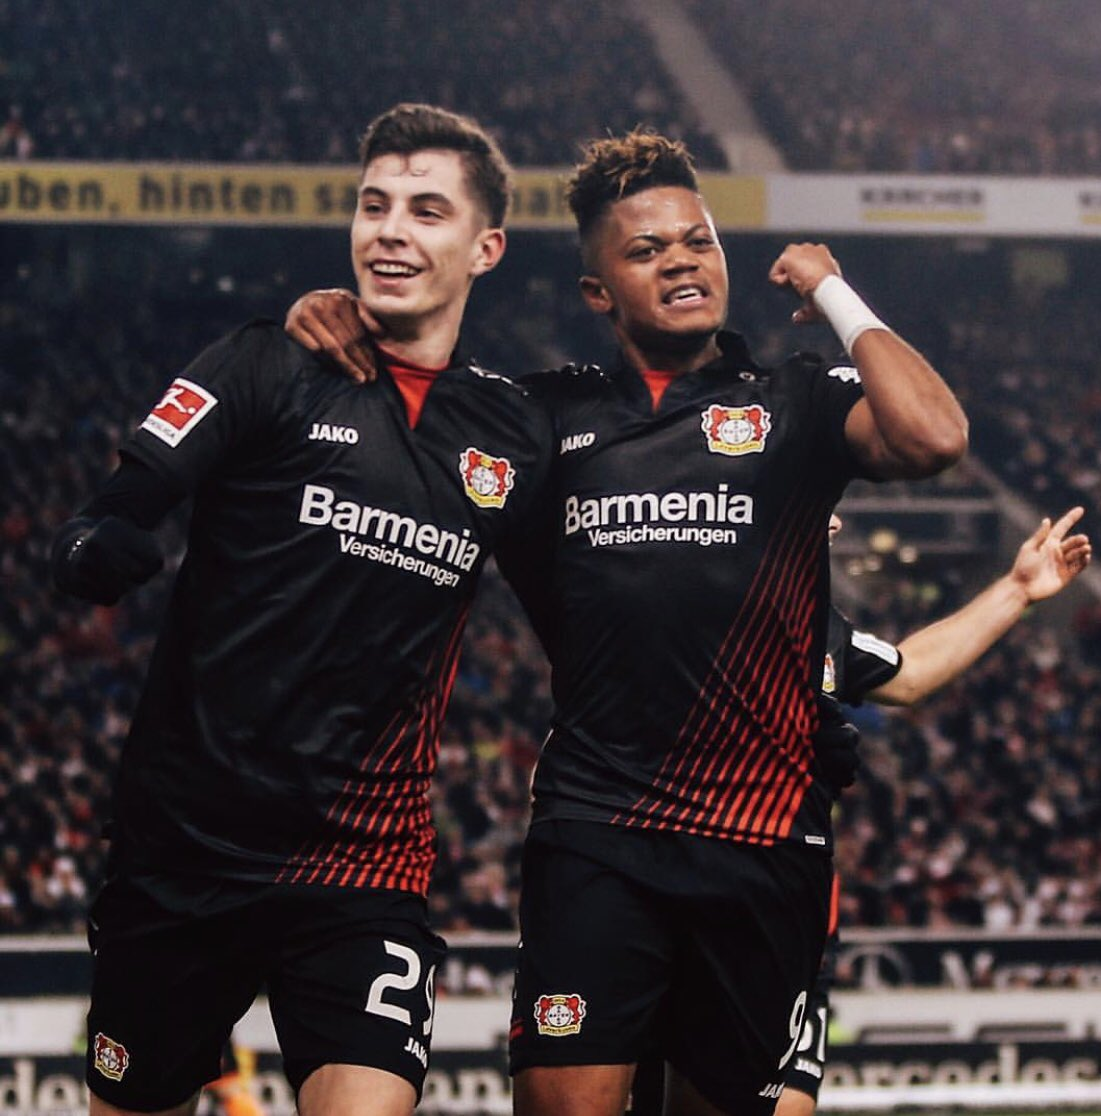 3points, 2 assists, 10 games undefeated, StärkeBayer! ⚽️🔥🙏🏽 @bayer04fussball  #GodIsInControl #LB9 https://t.co/OPrgTukwQ6